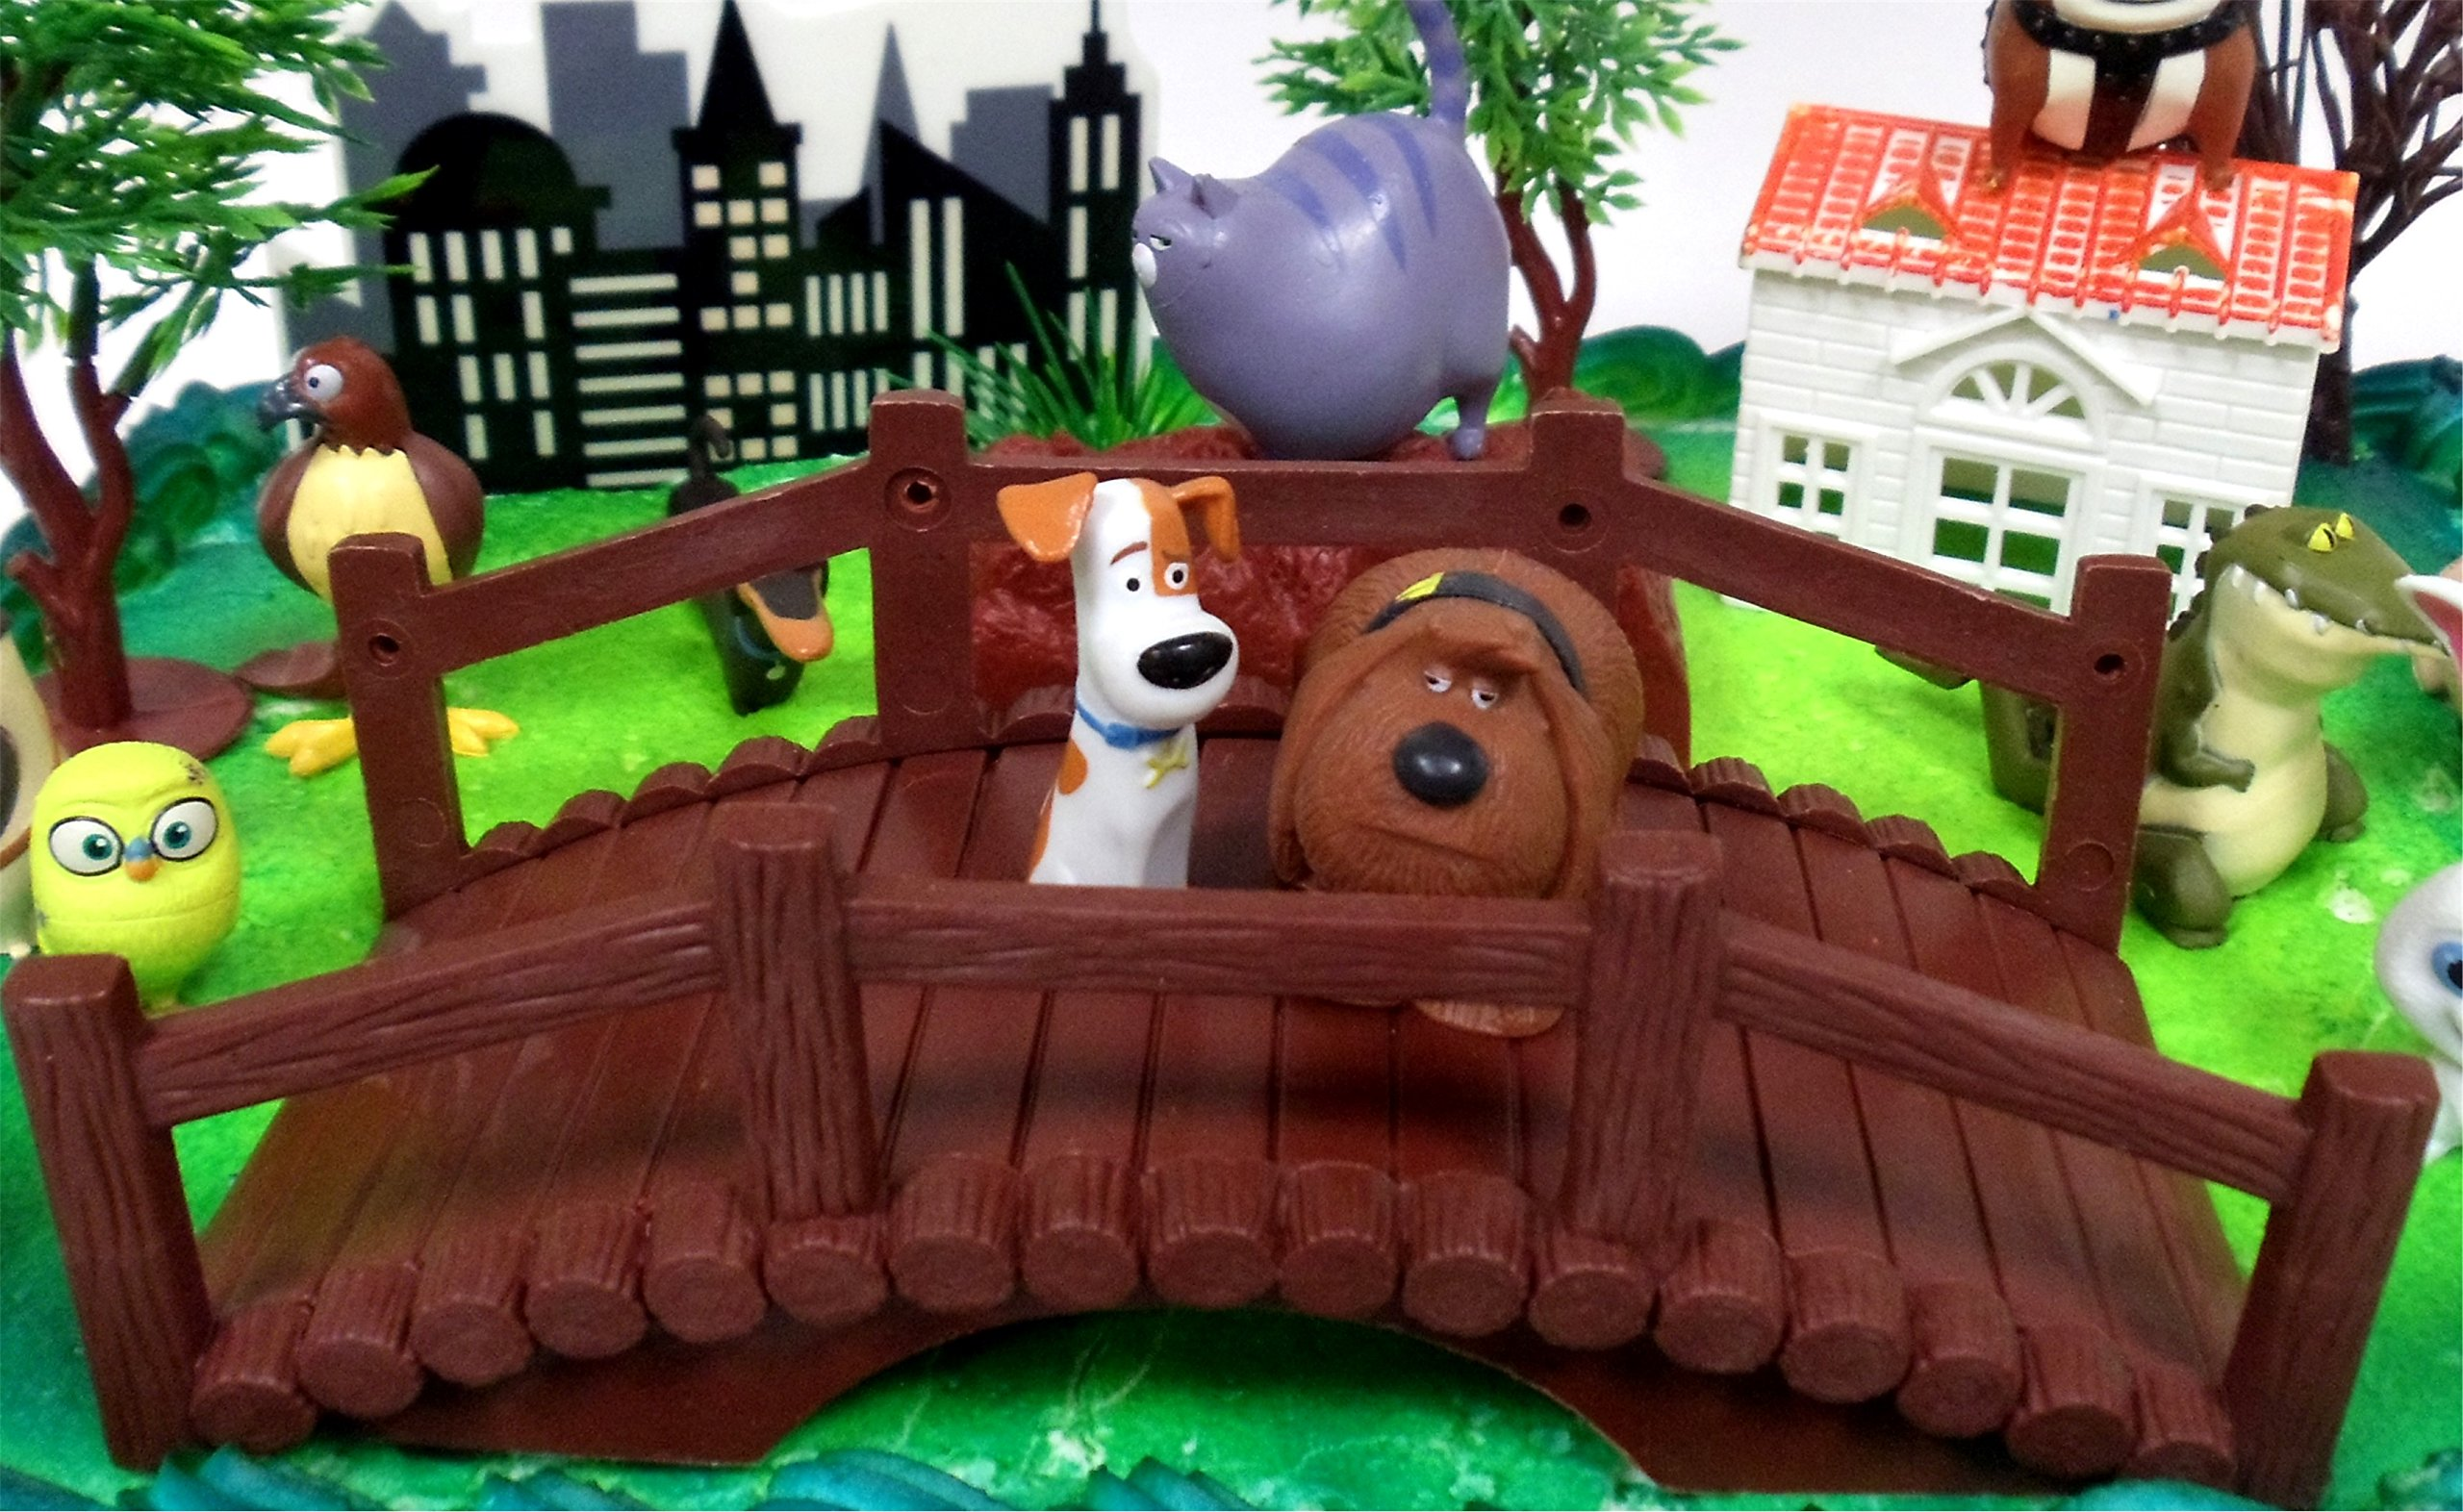 Secret Life of Pets Birthday Cake Topper Set Featuring Character Figures and Decorative Accessories by Cake Toppers (Image #2)